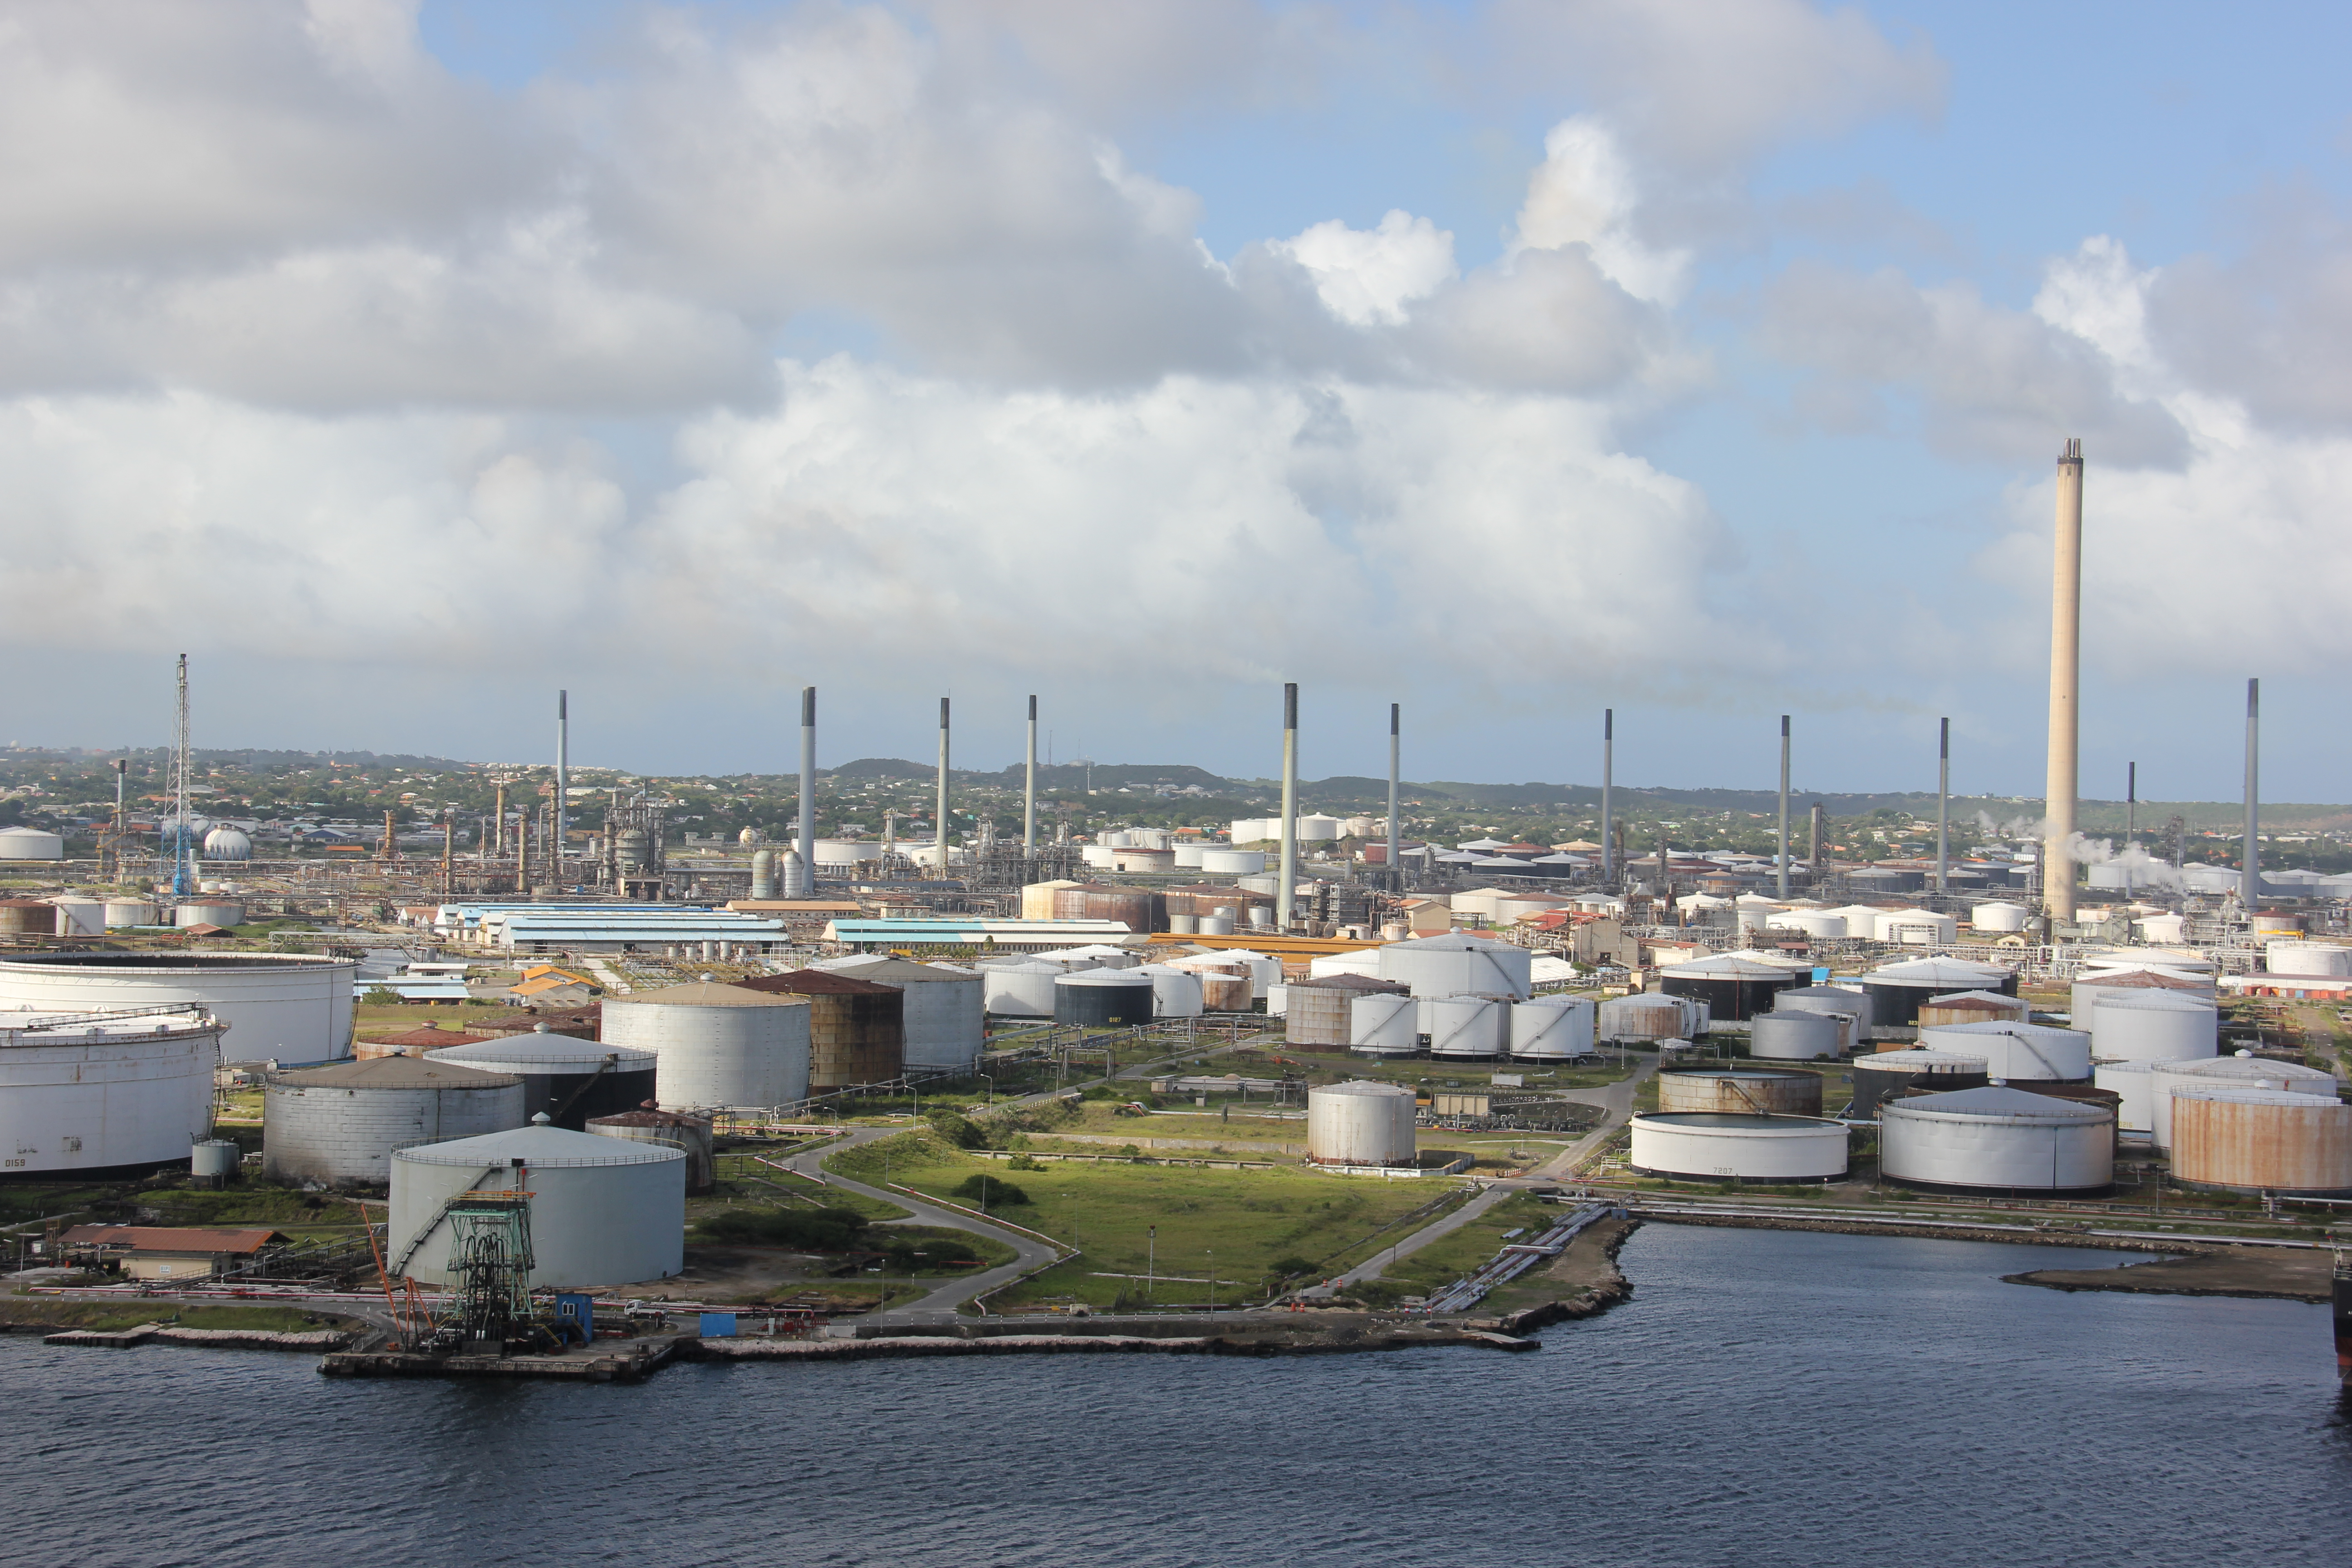 File:Laika ac Isla Oil Refinery (11693347275).jpg - Wikimedia Commons